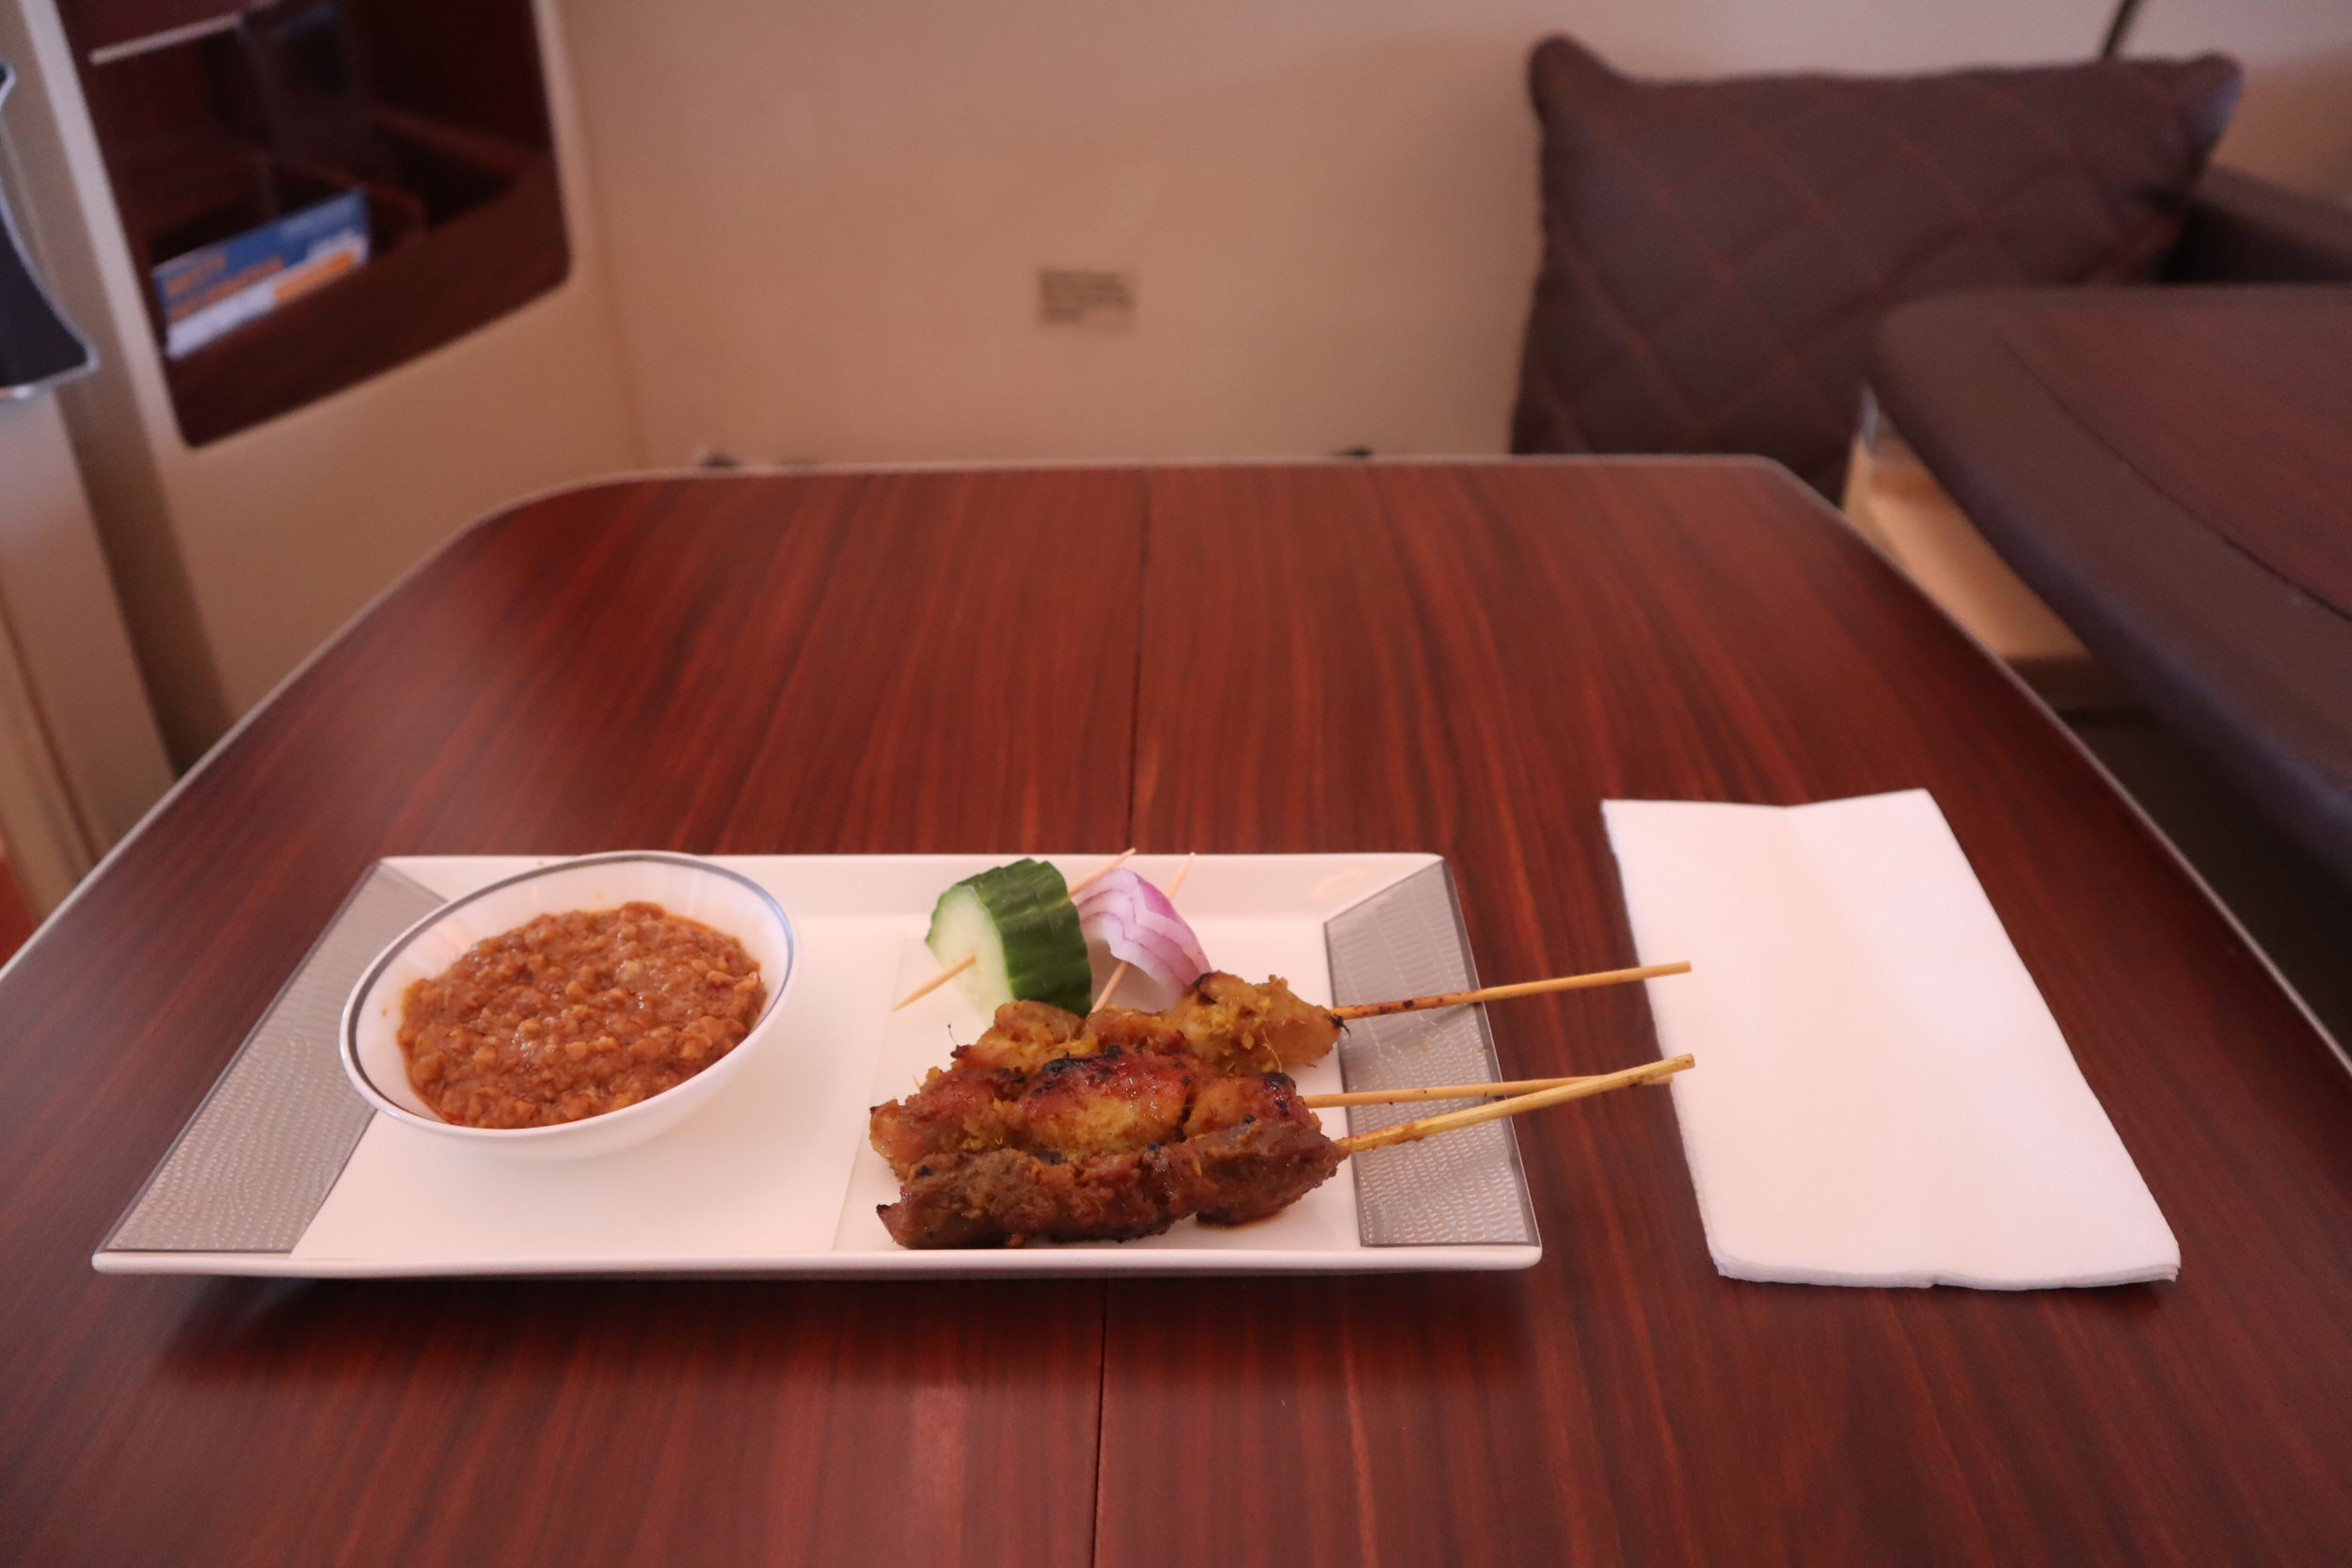 Singapore Airlines Suites Class – Chicken and lamb satay